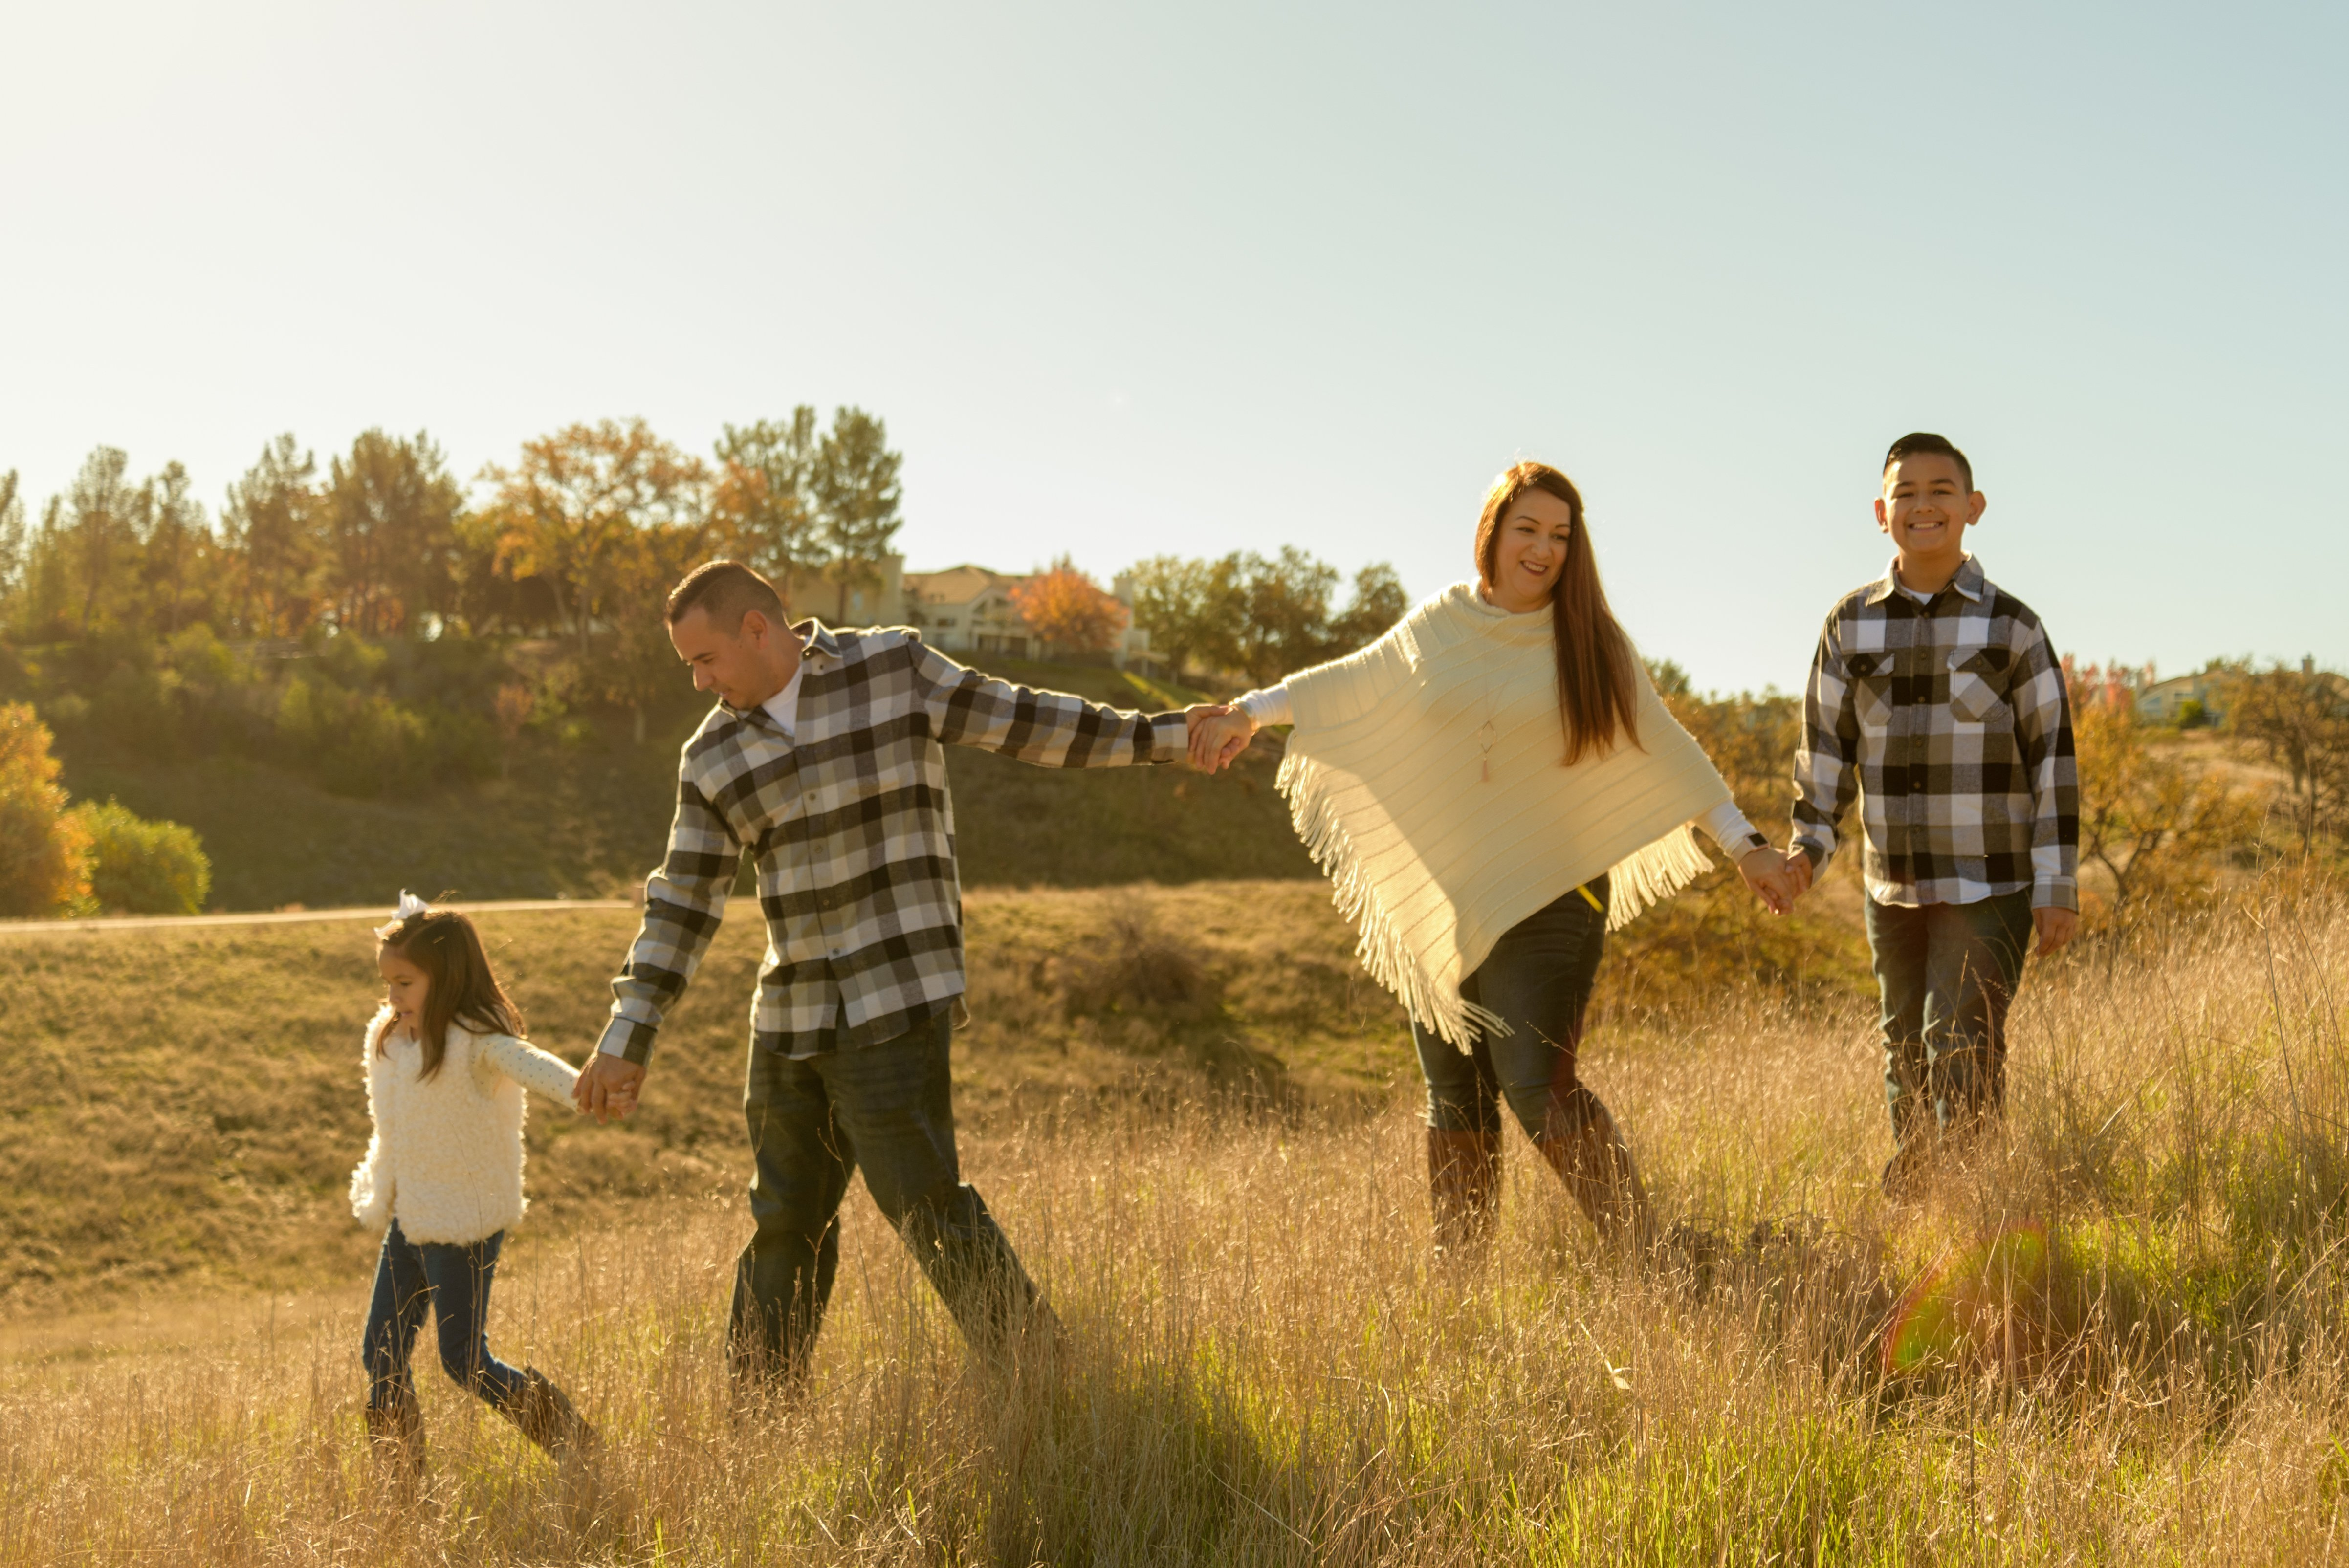 Family fall portraits with the sunrise giving a beautiful back-lit effect on the colors and exposure of the image.